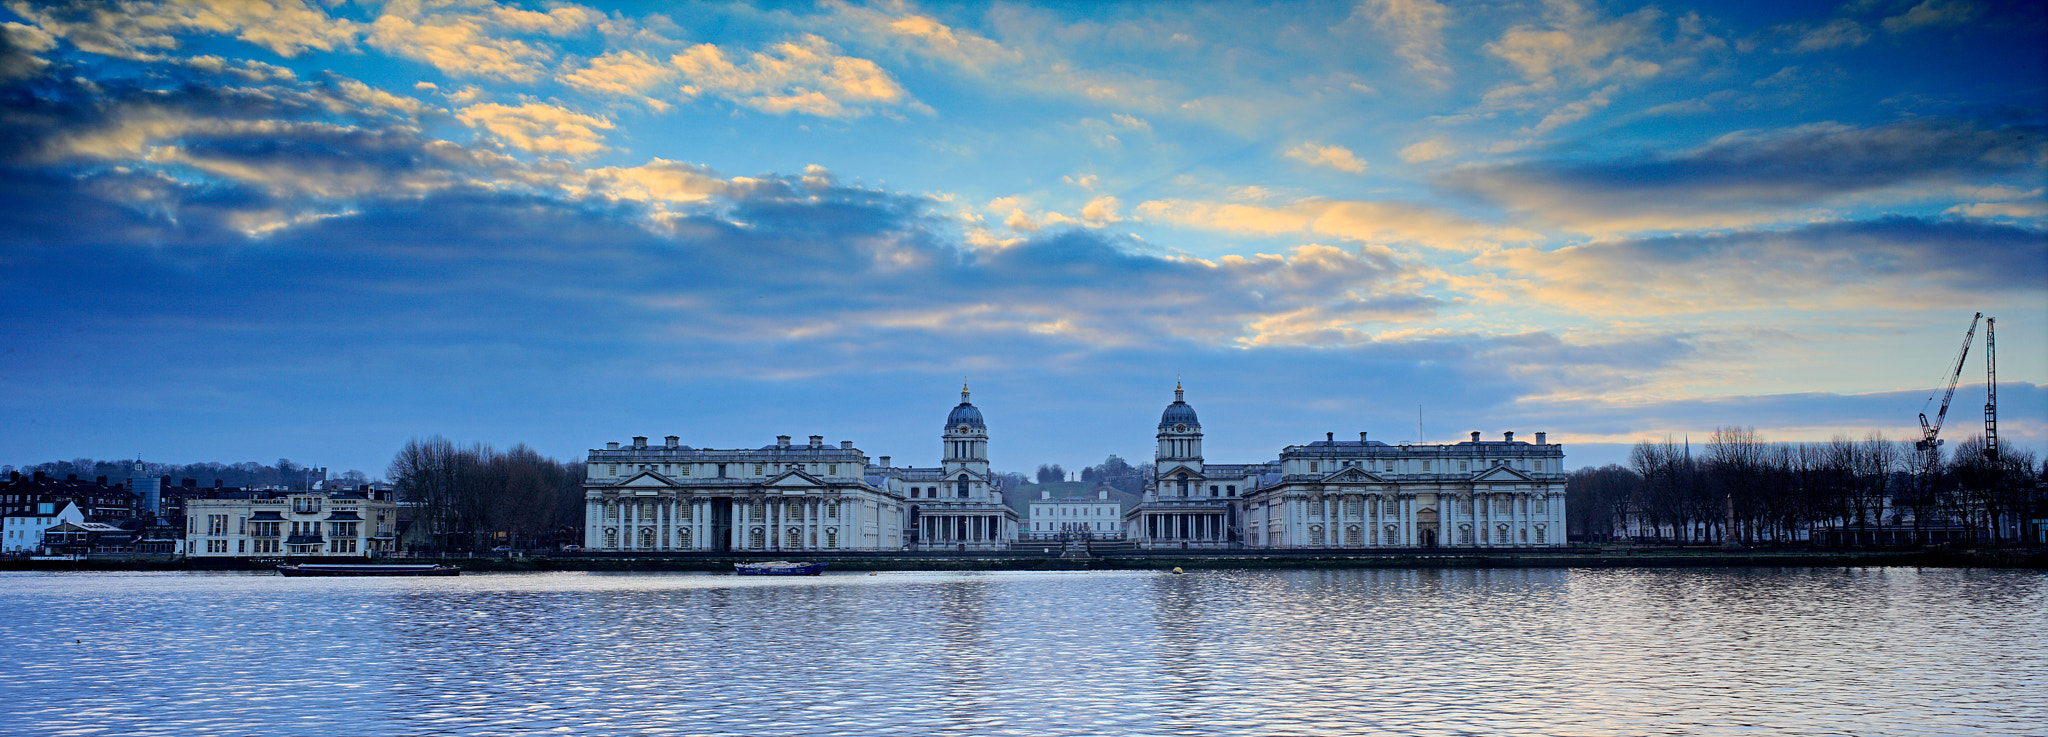 Photograph Early morning, Greenwich waterfront by John Hill on 500px